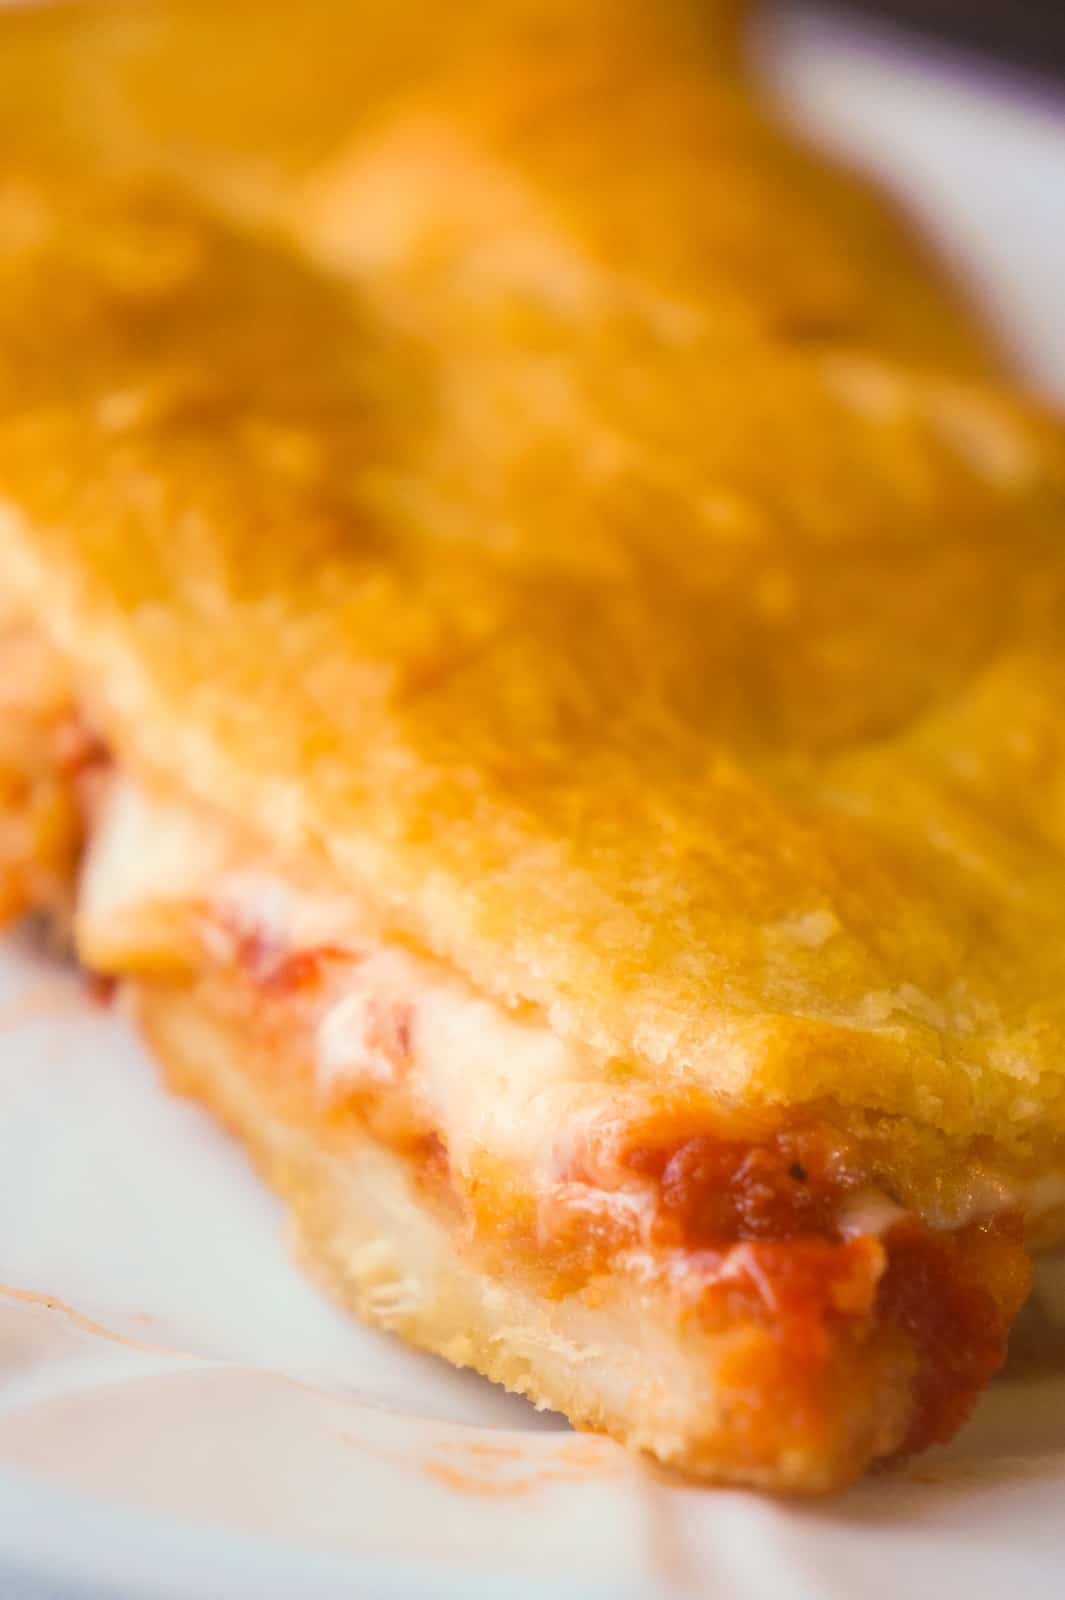 Chicken Parm Crescent Bake is an easy 5 ingredient dinner recipe. Breaded chicken with marinara sauce and mozzarella cheese topped with Pillsbury crescent roll dough is a delicious dinner your whole family will love.